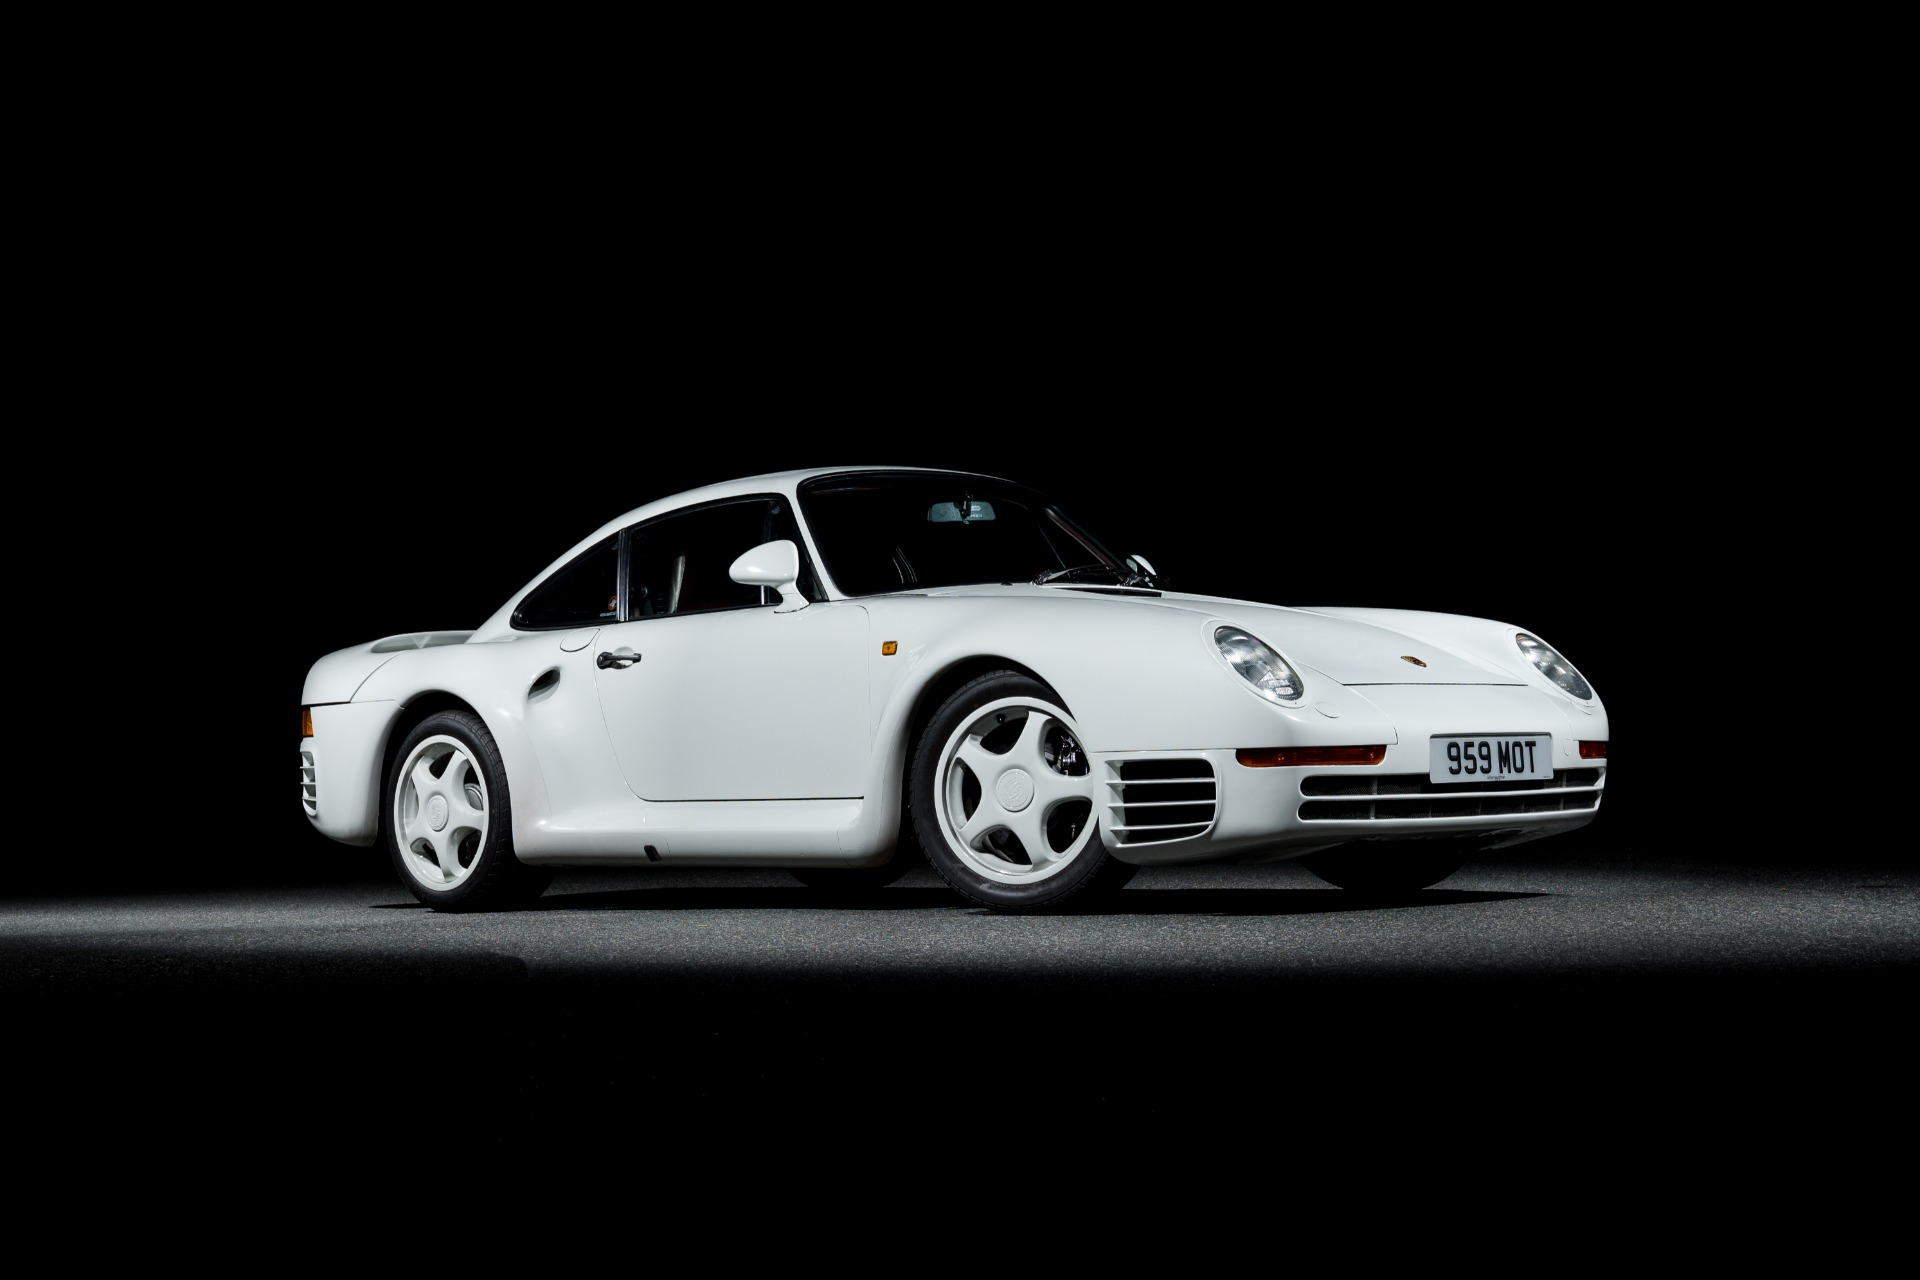 Used 1988 Porsche 959 KOMFORT COUPE / AWD / 6-SPEED MANUAL / ORIGINAL SUPERCAR for sale $1,425,000 at Formula Imports in Charlotte NC 28227 19